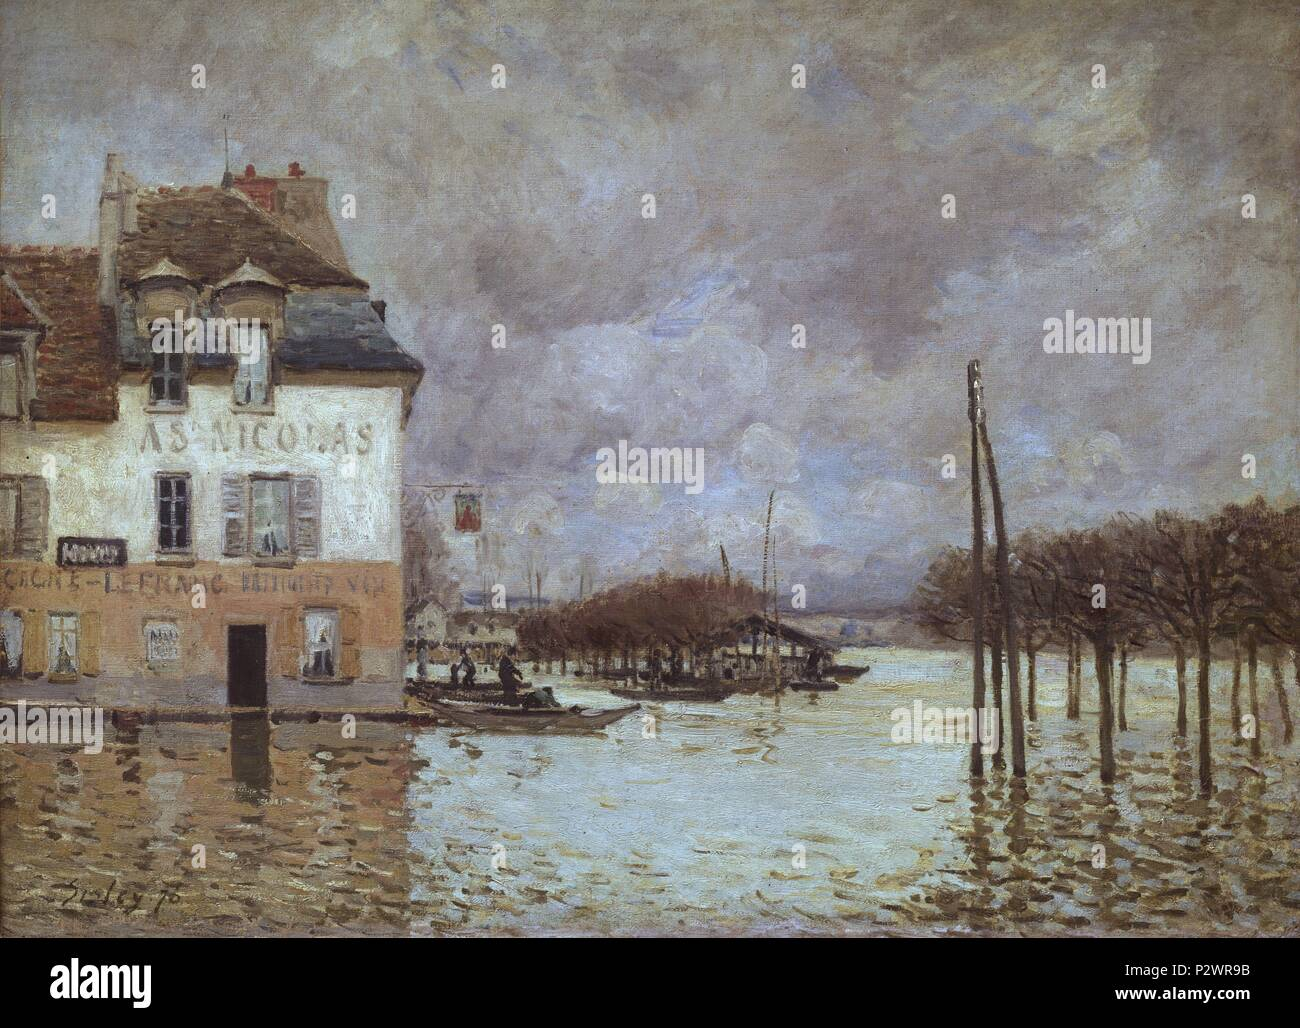 INUNDACION DE PORT MARLY. Author: Alfred Sisley (1839-1899). Location: MUSEE D'ORSAY, FRANCE. - Stock Image